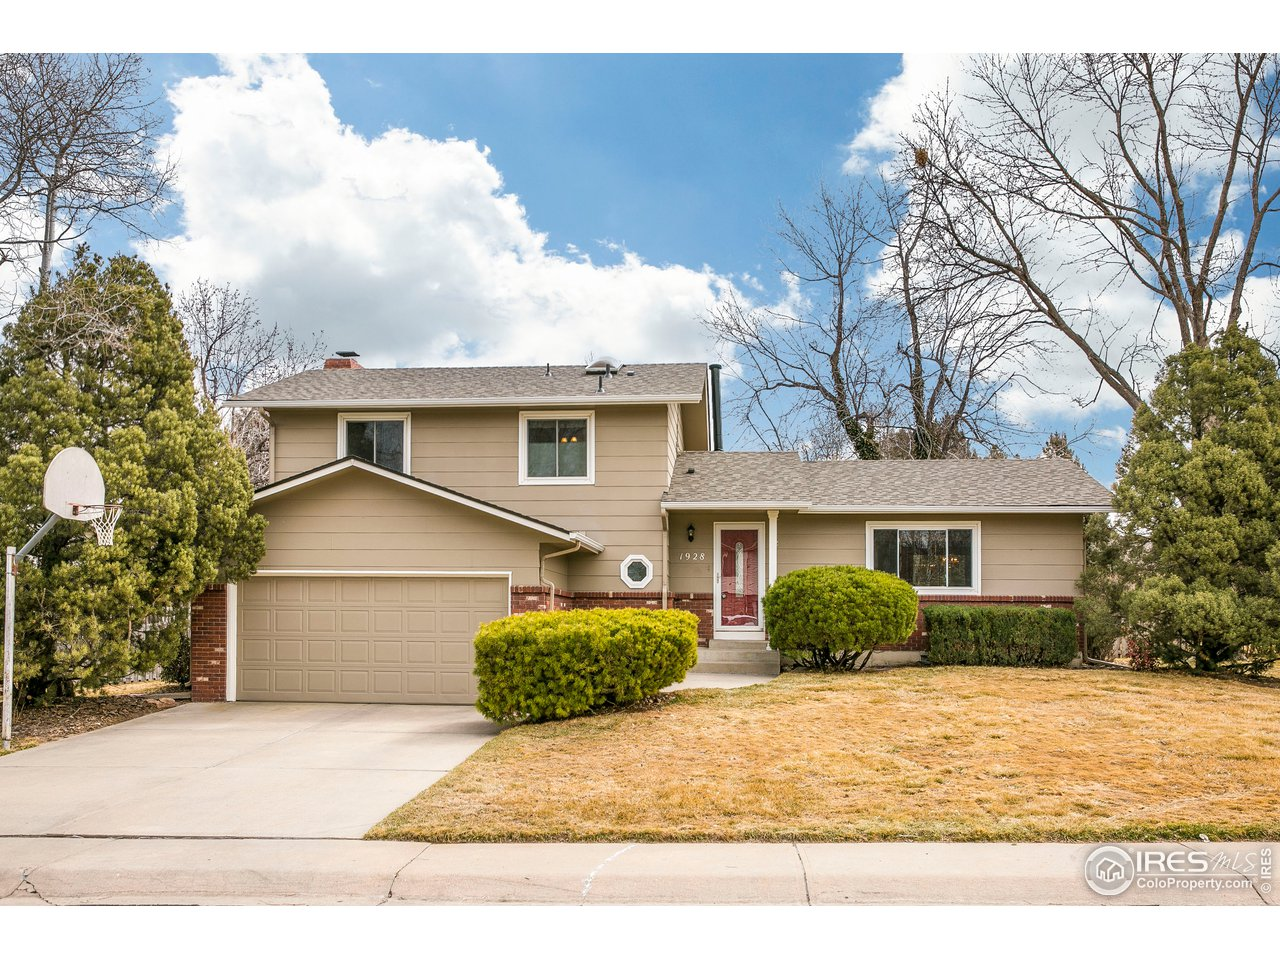 1928 43RD AVE, GREELEY, CO 80634